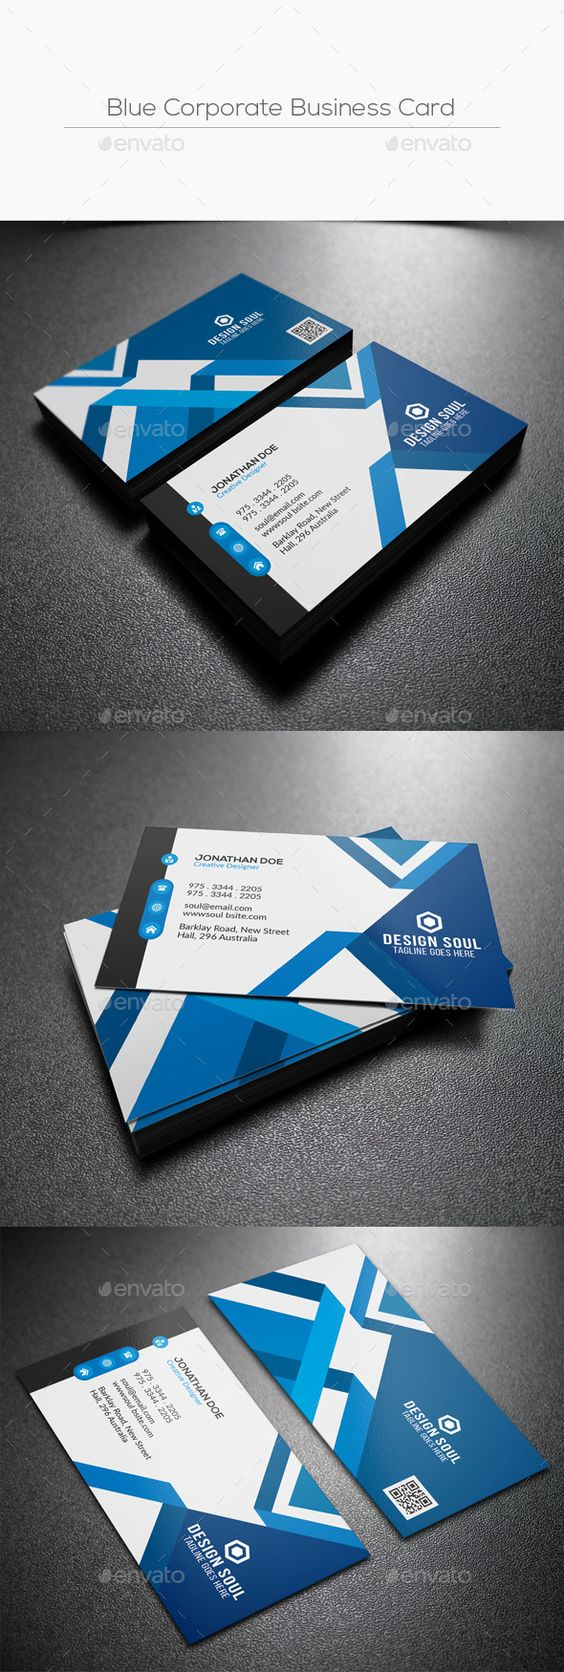 Business cards rockwall tx gallery card design and card template business cards in rockwall texas images card design and card template community entrance raleigh nc google reheart Images